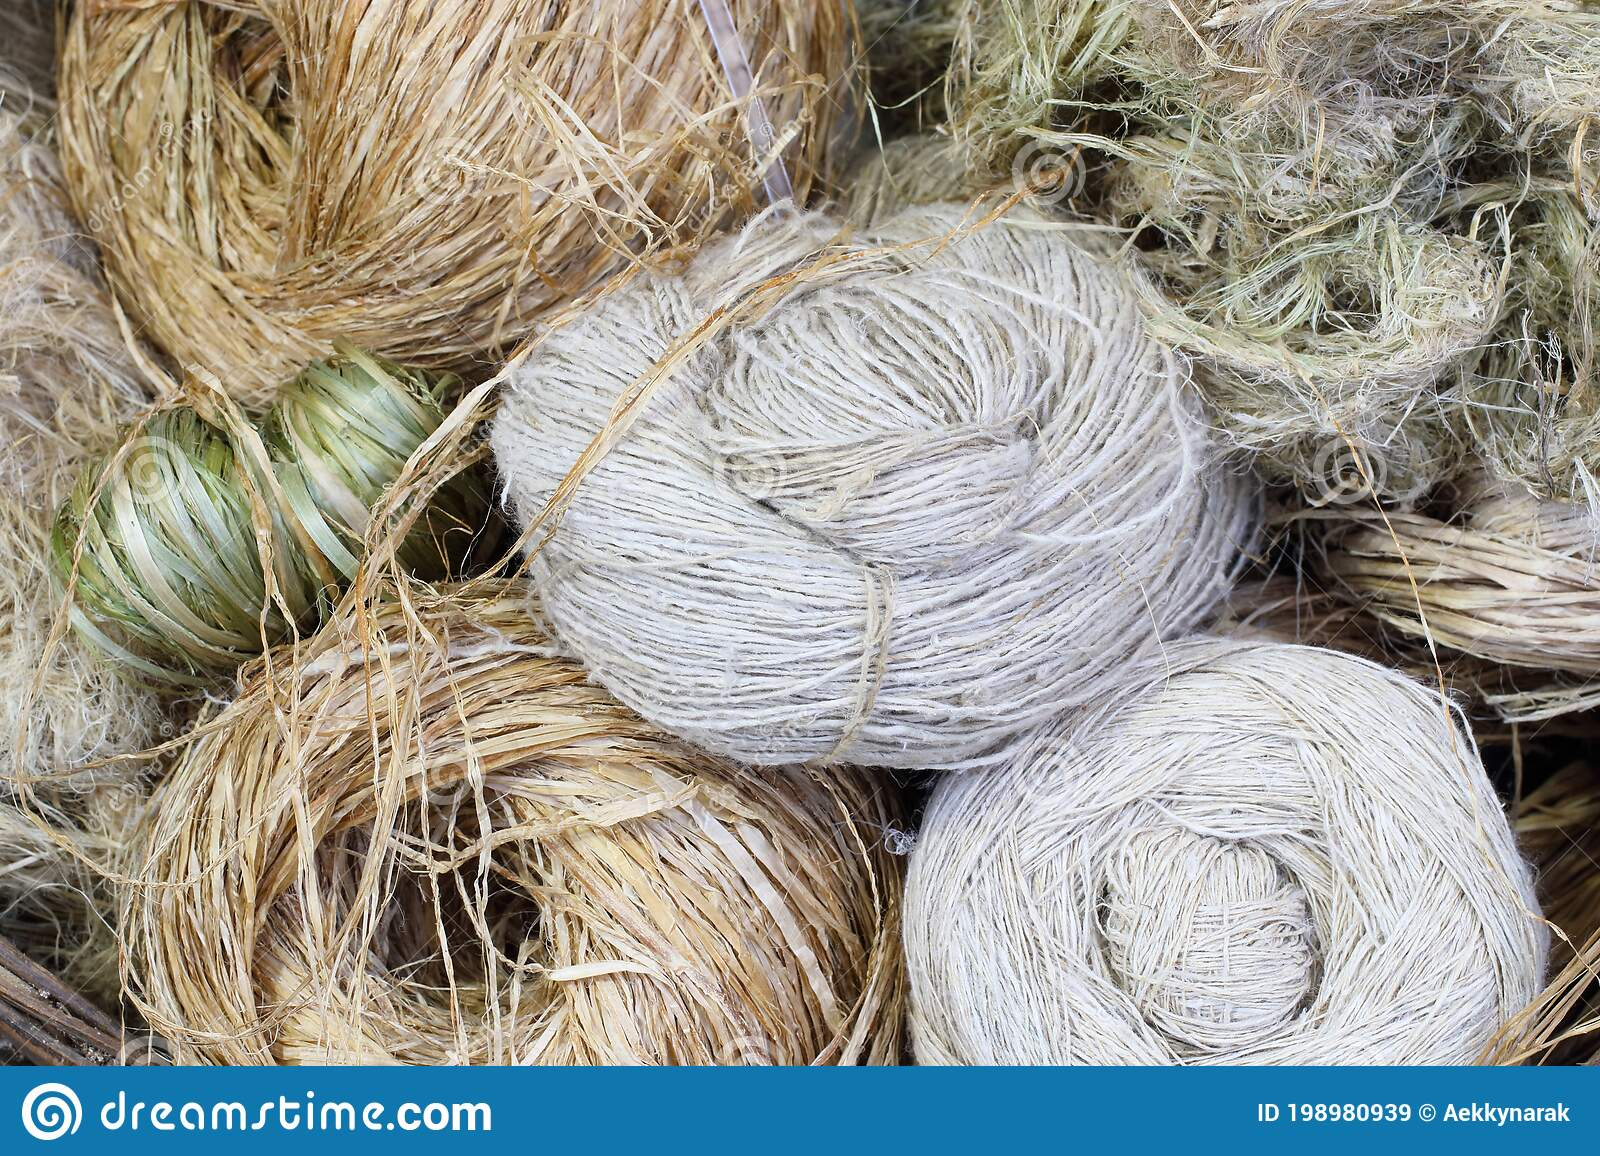 6 533 Hemp Rope Texture Photos Free Royalty Free Stock Photos From Dreamstime